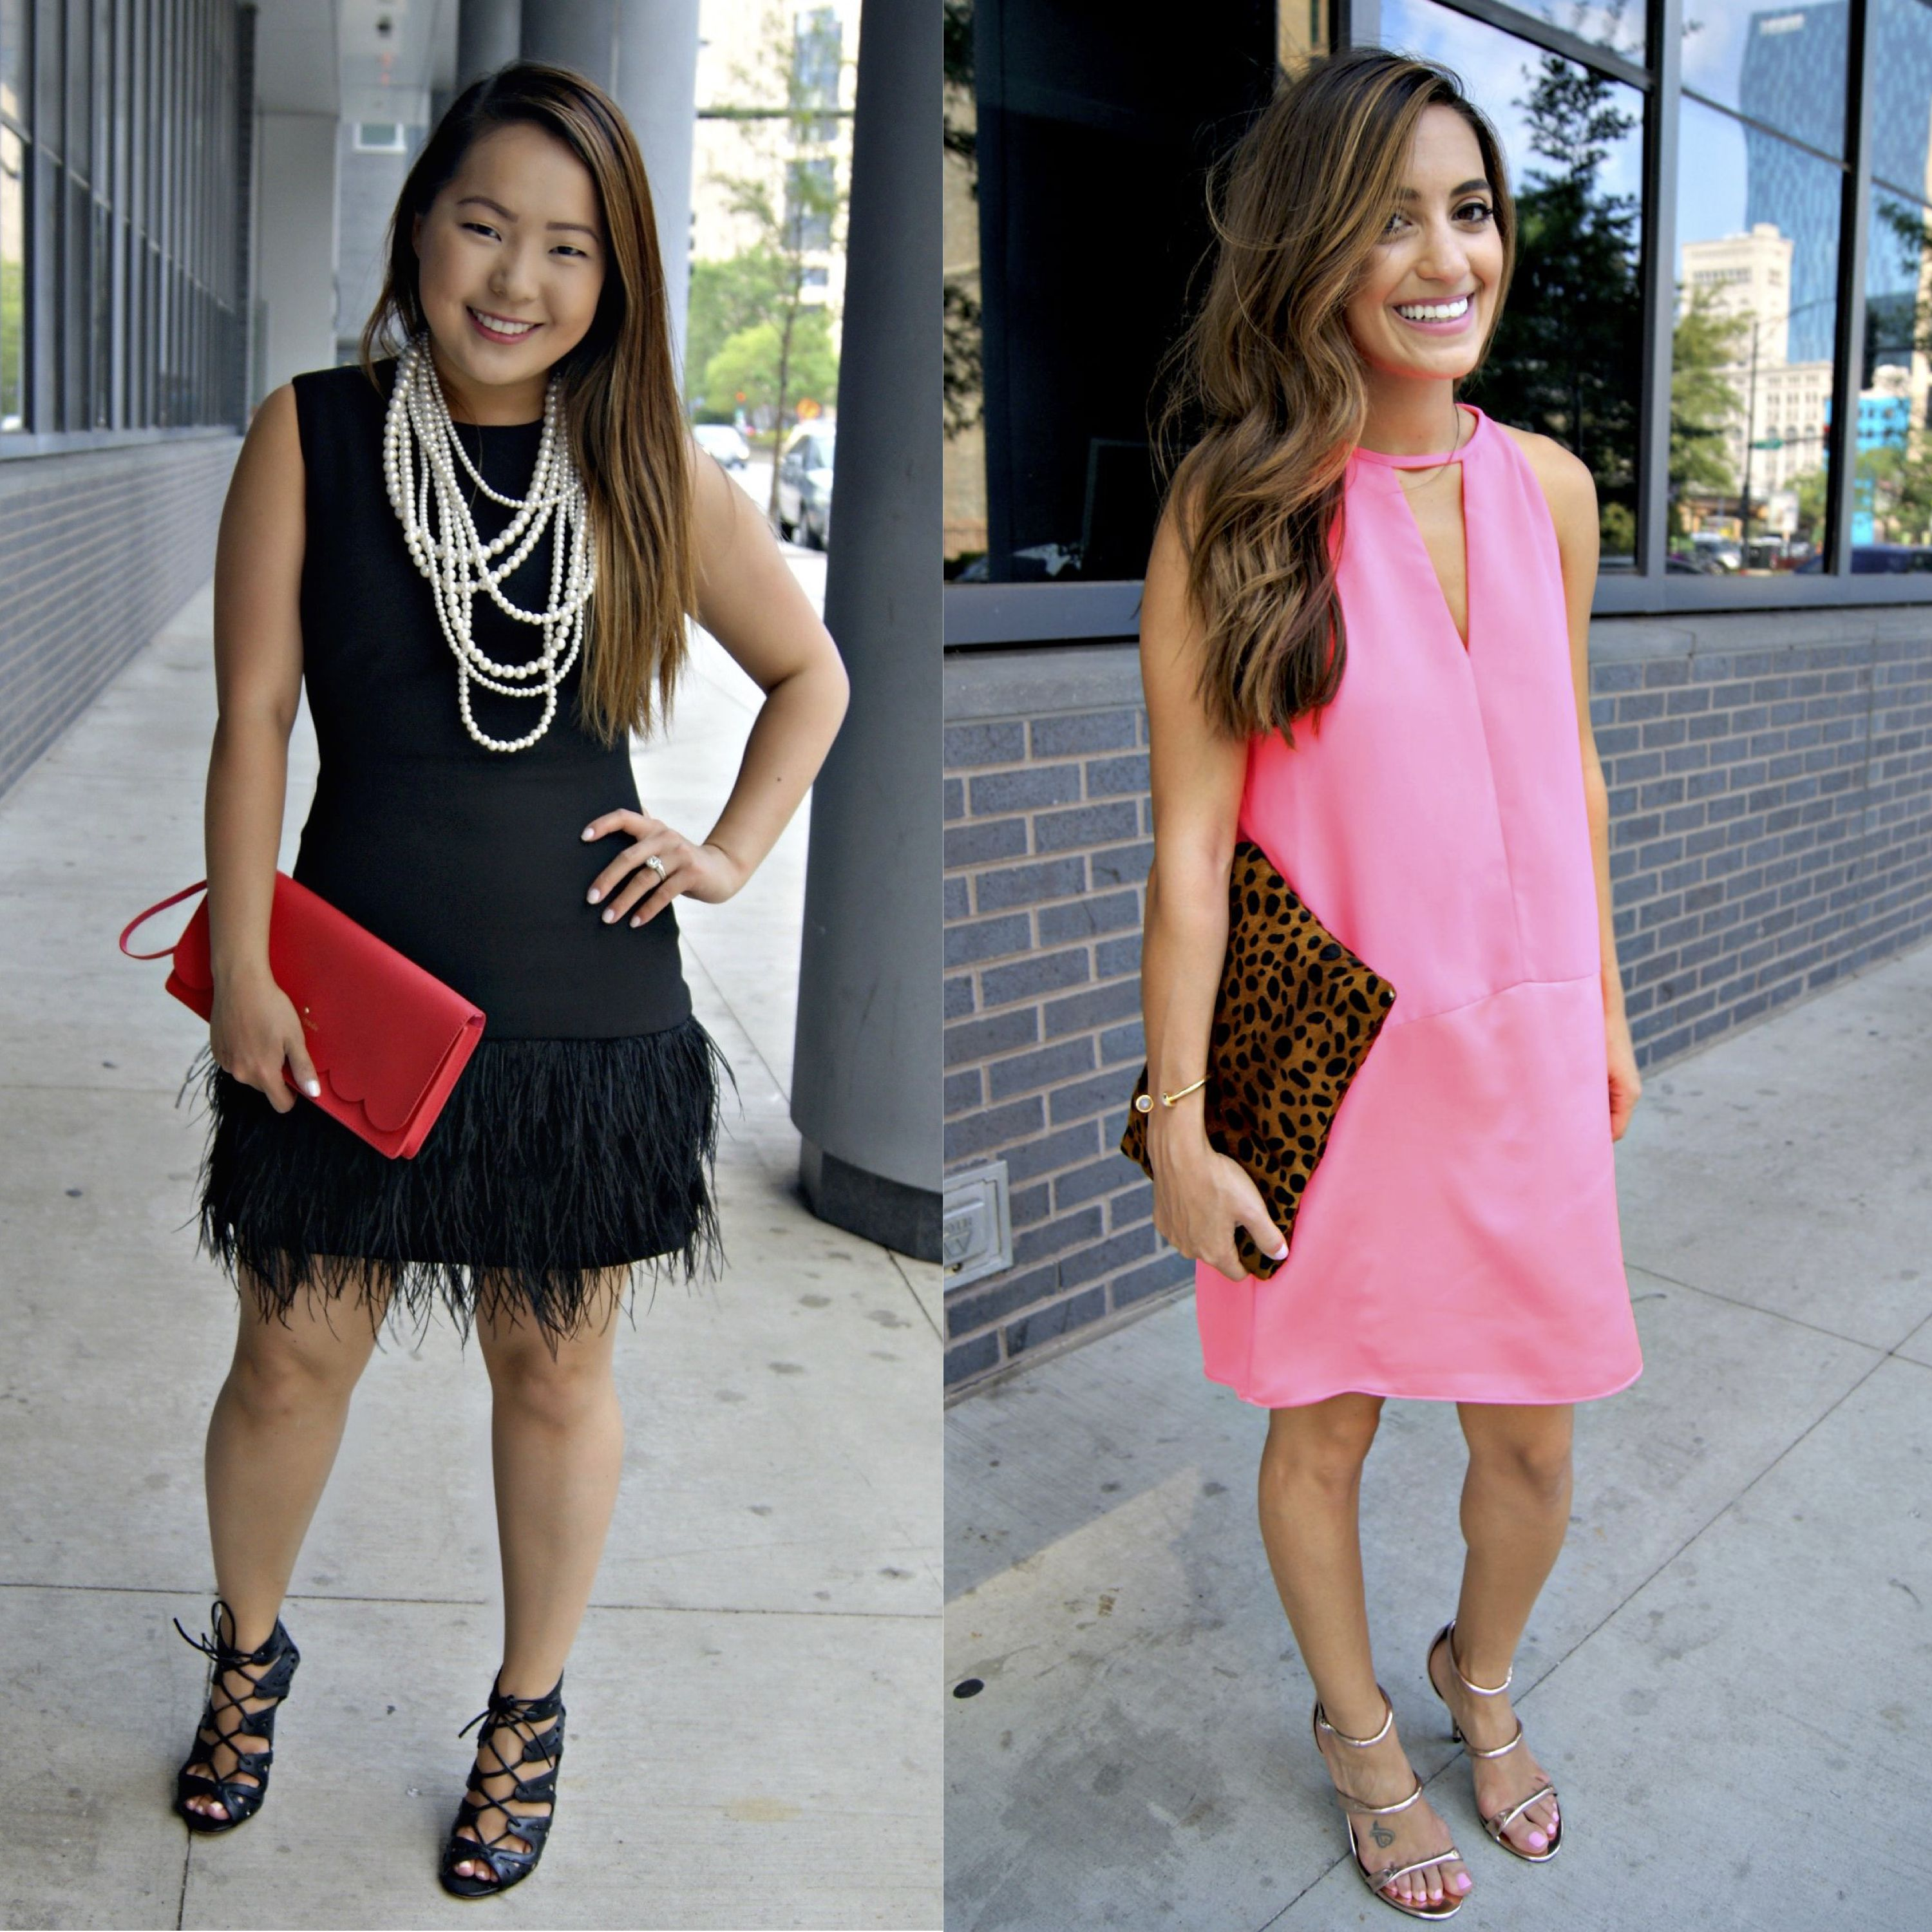 Date Night With Rent The Runway Pt 2 Lbd Black Dress With Feathers White Pearls Lace Up Heels Hot Pink Dress Hot Pink Dresses Lbd Black Dress Lace Up Heels [ 3000 x 3000 Pixel ]